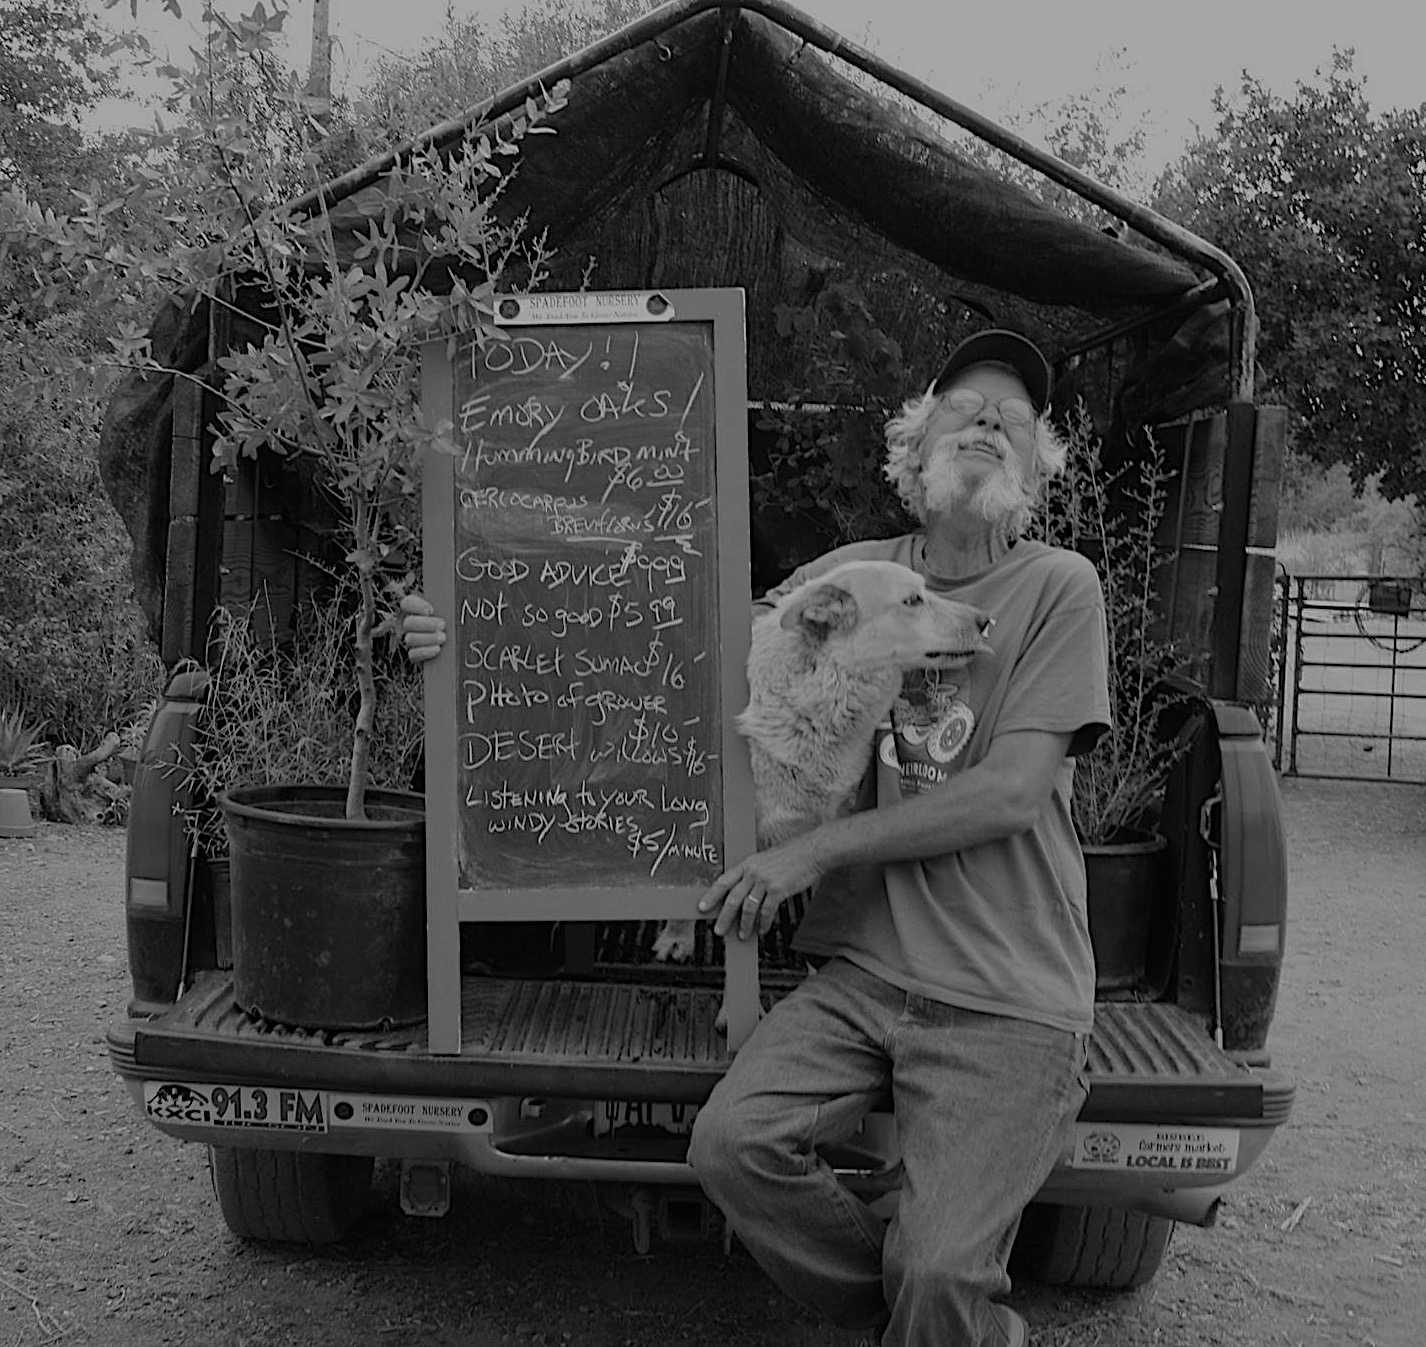 founder and grower. Petey is the manager of the Chihuahuan office (in Cochise County) mostly responsible for propagation, though he can sometimes be found at the Bisbee Farmers' Market selling plants. - petey mesquitey